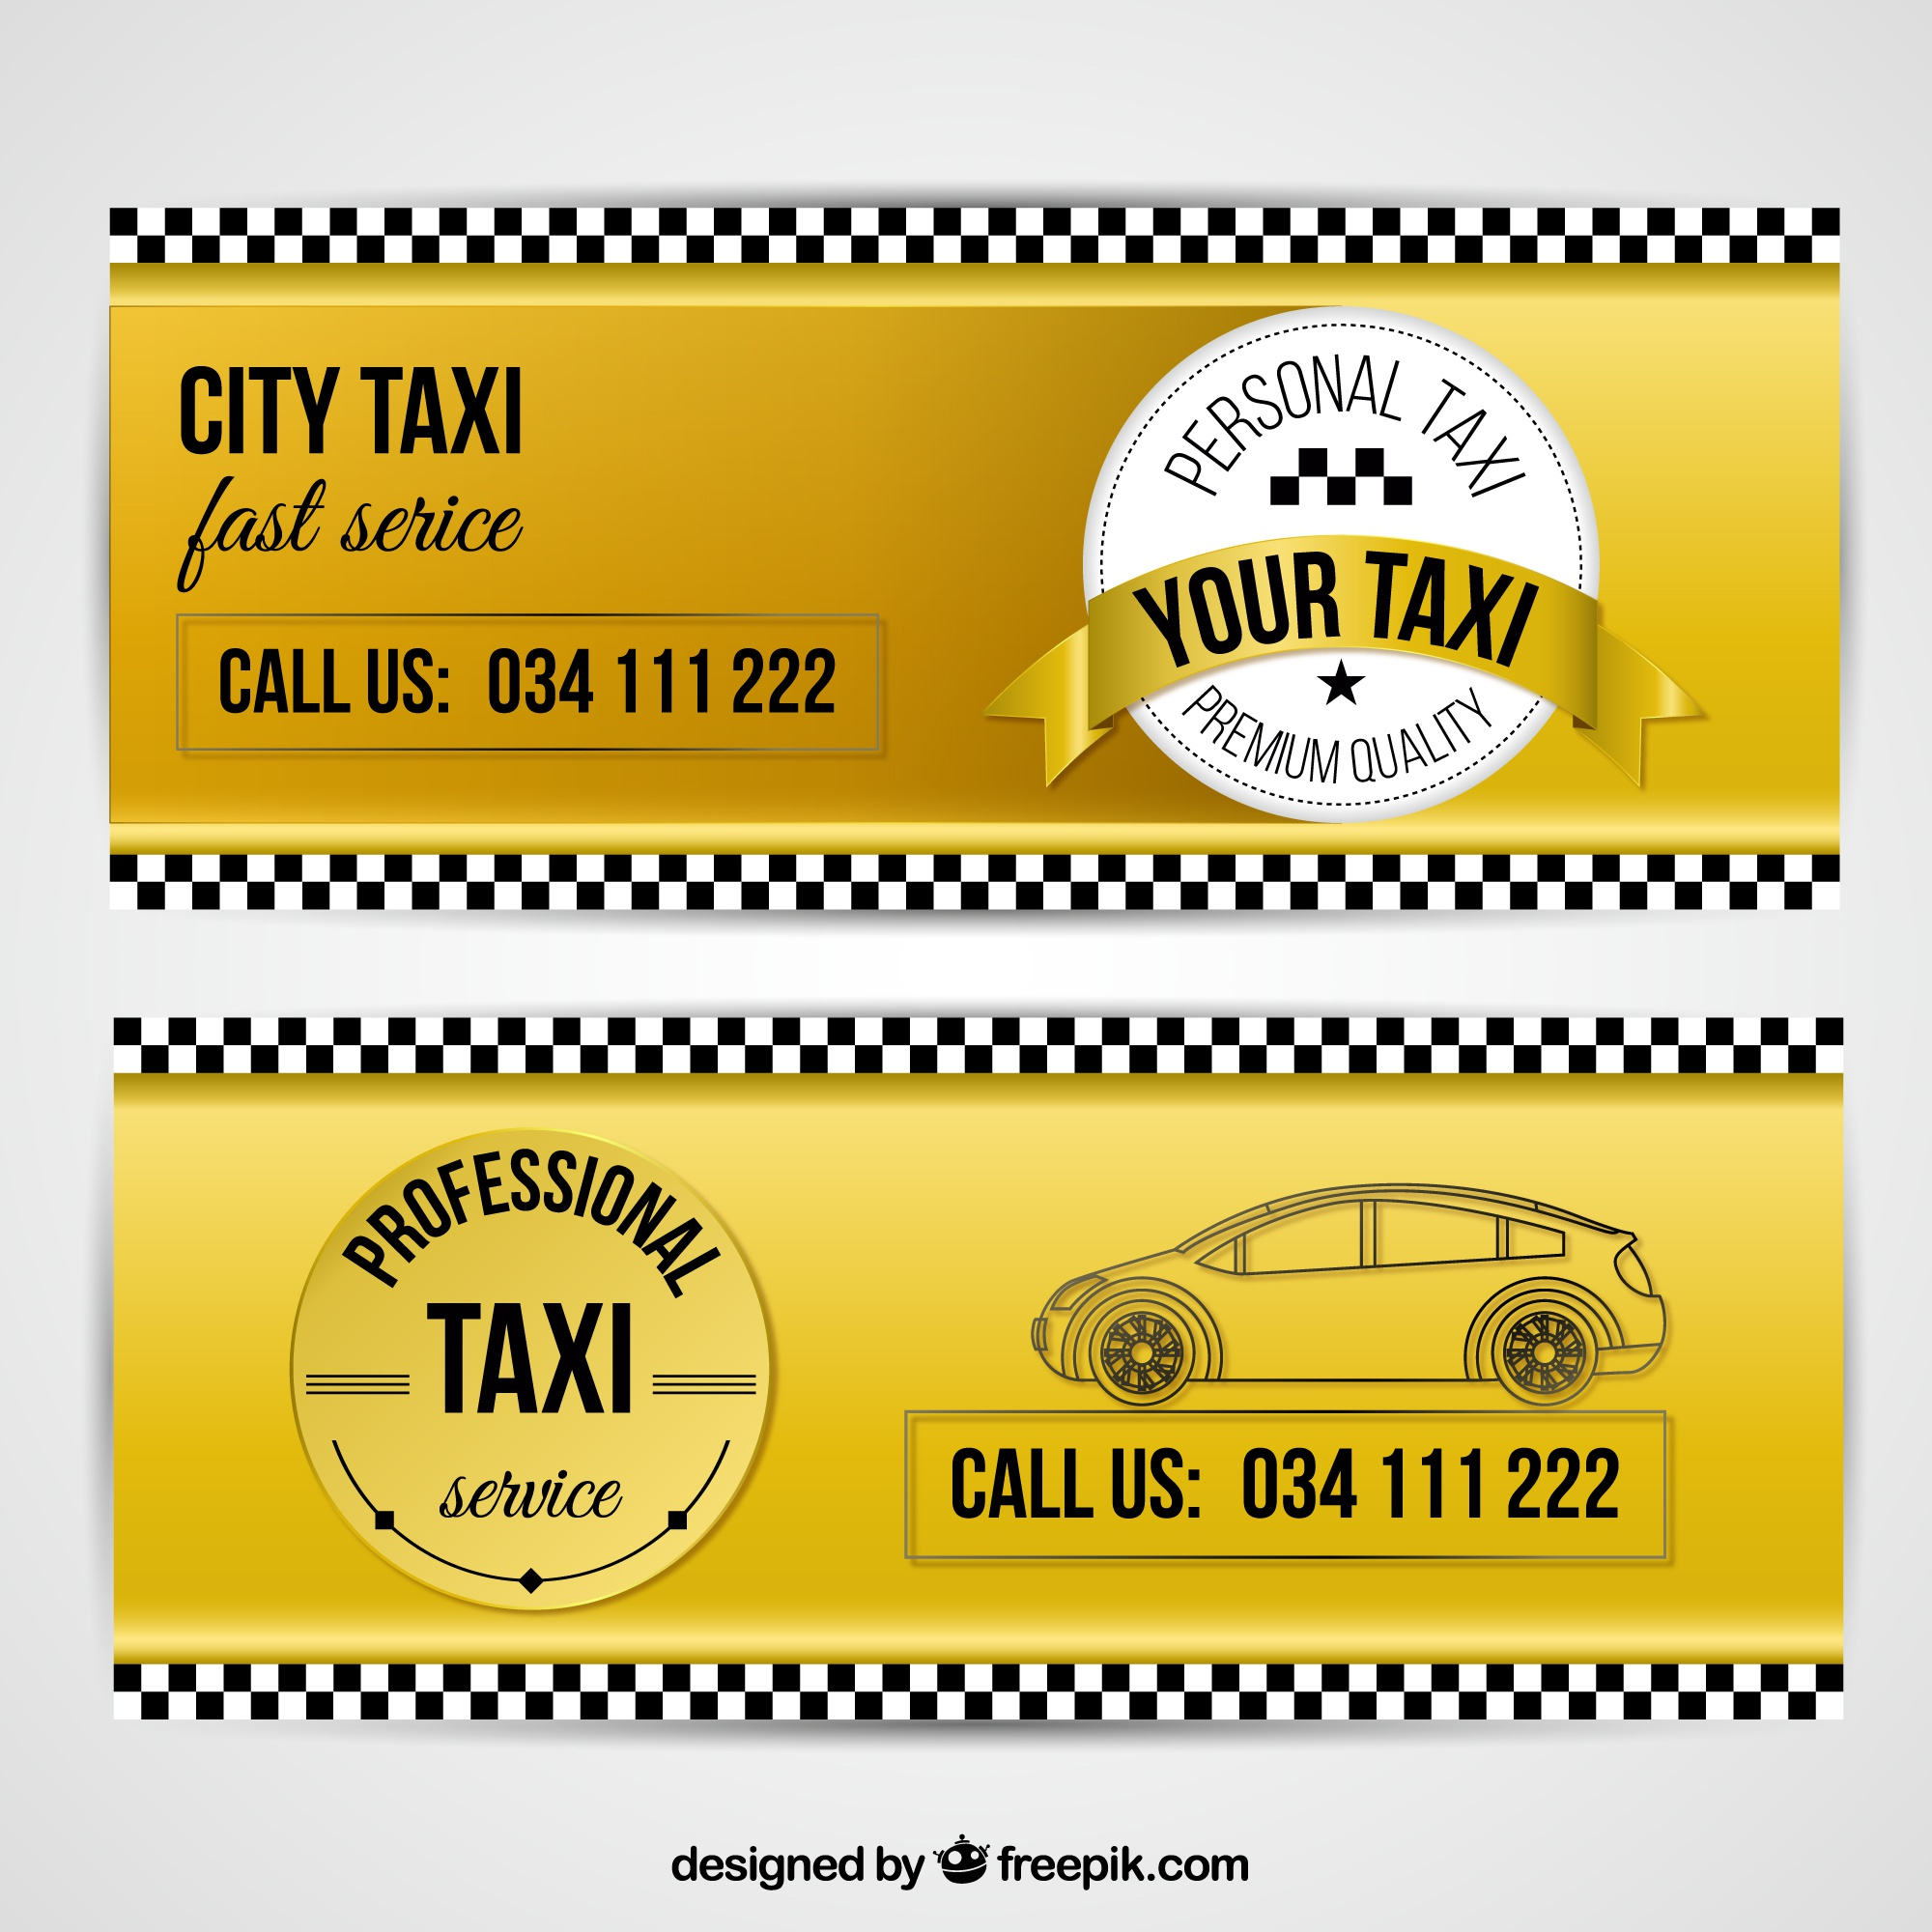 Useful banners for taxi services